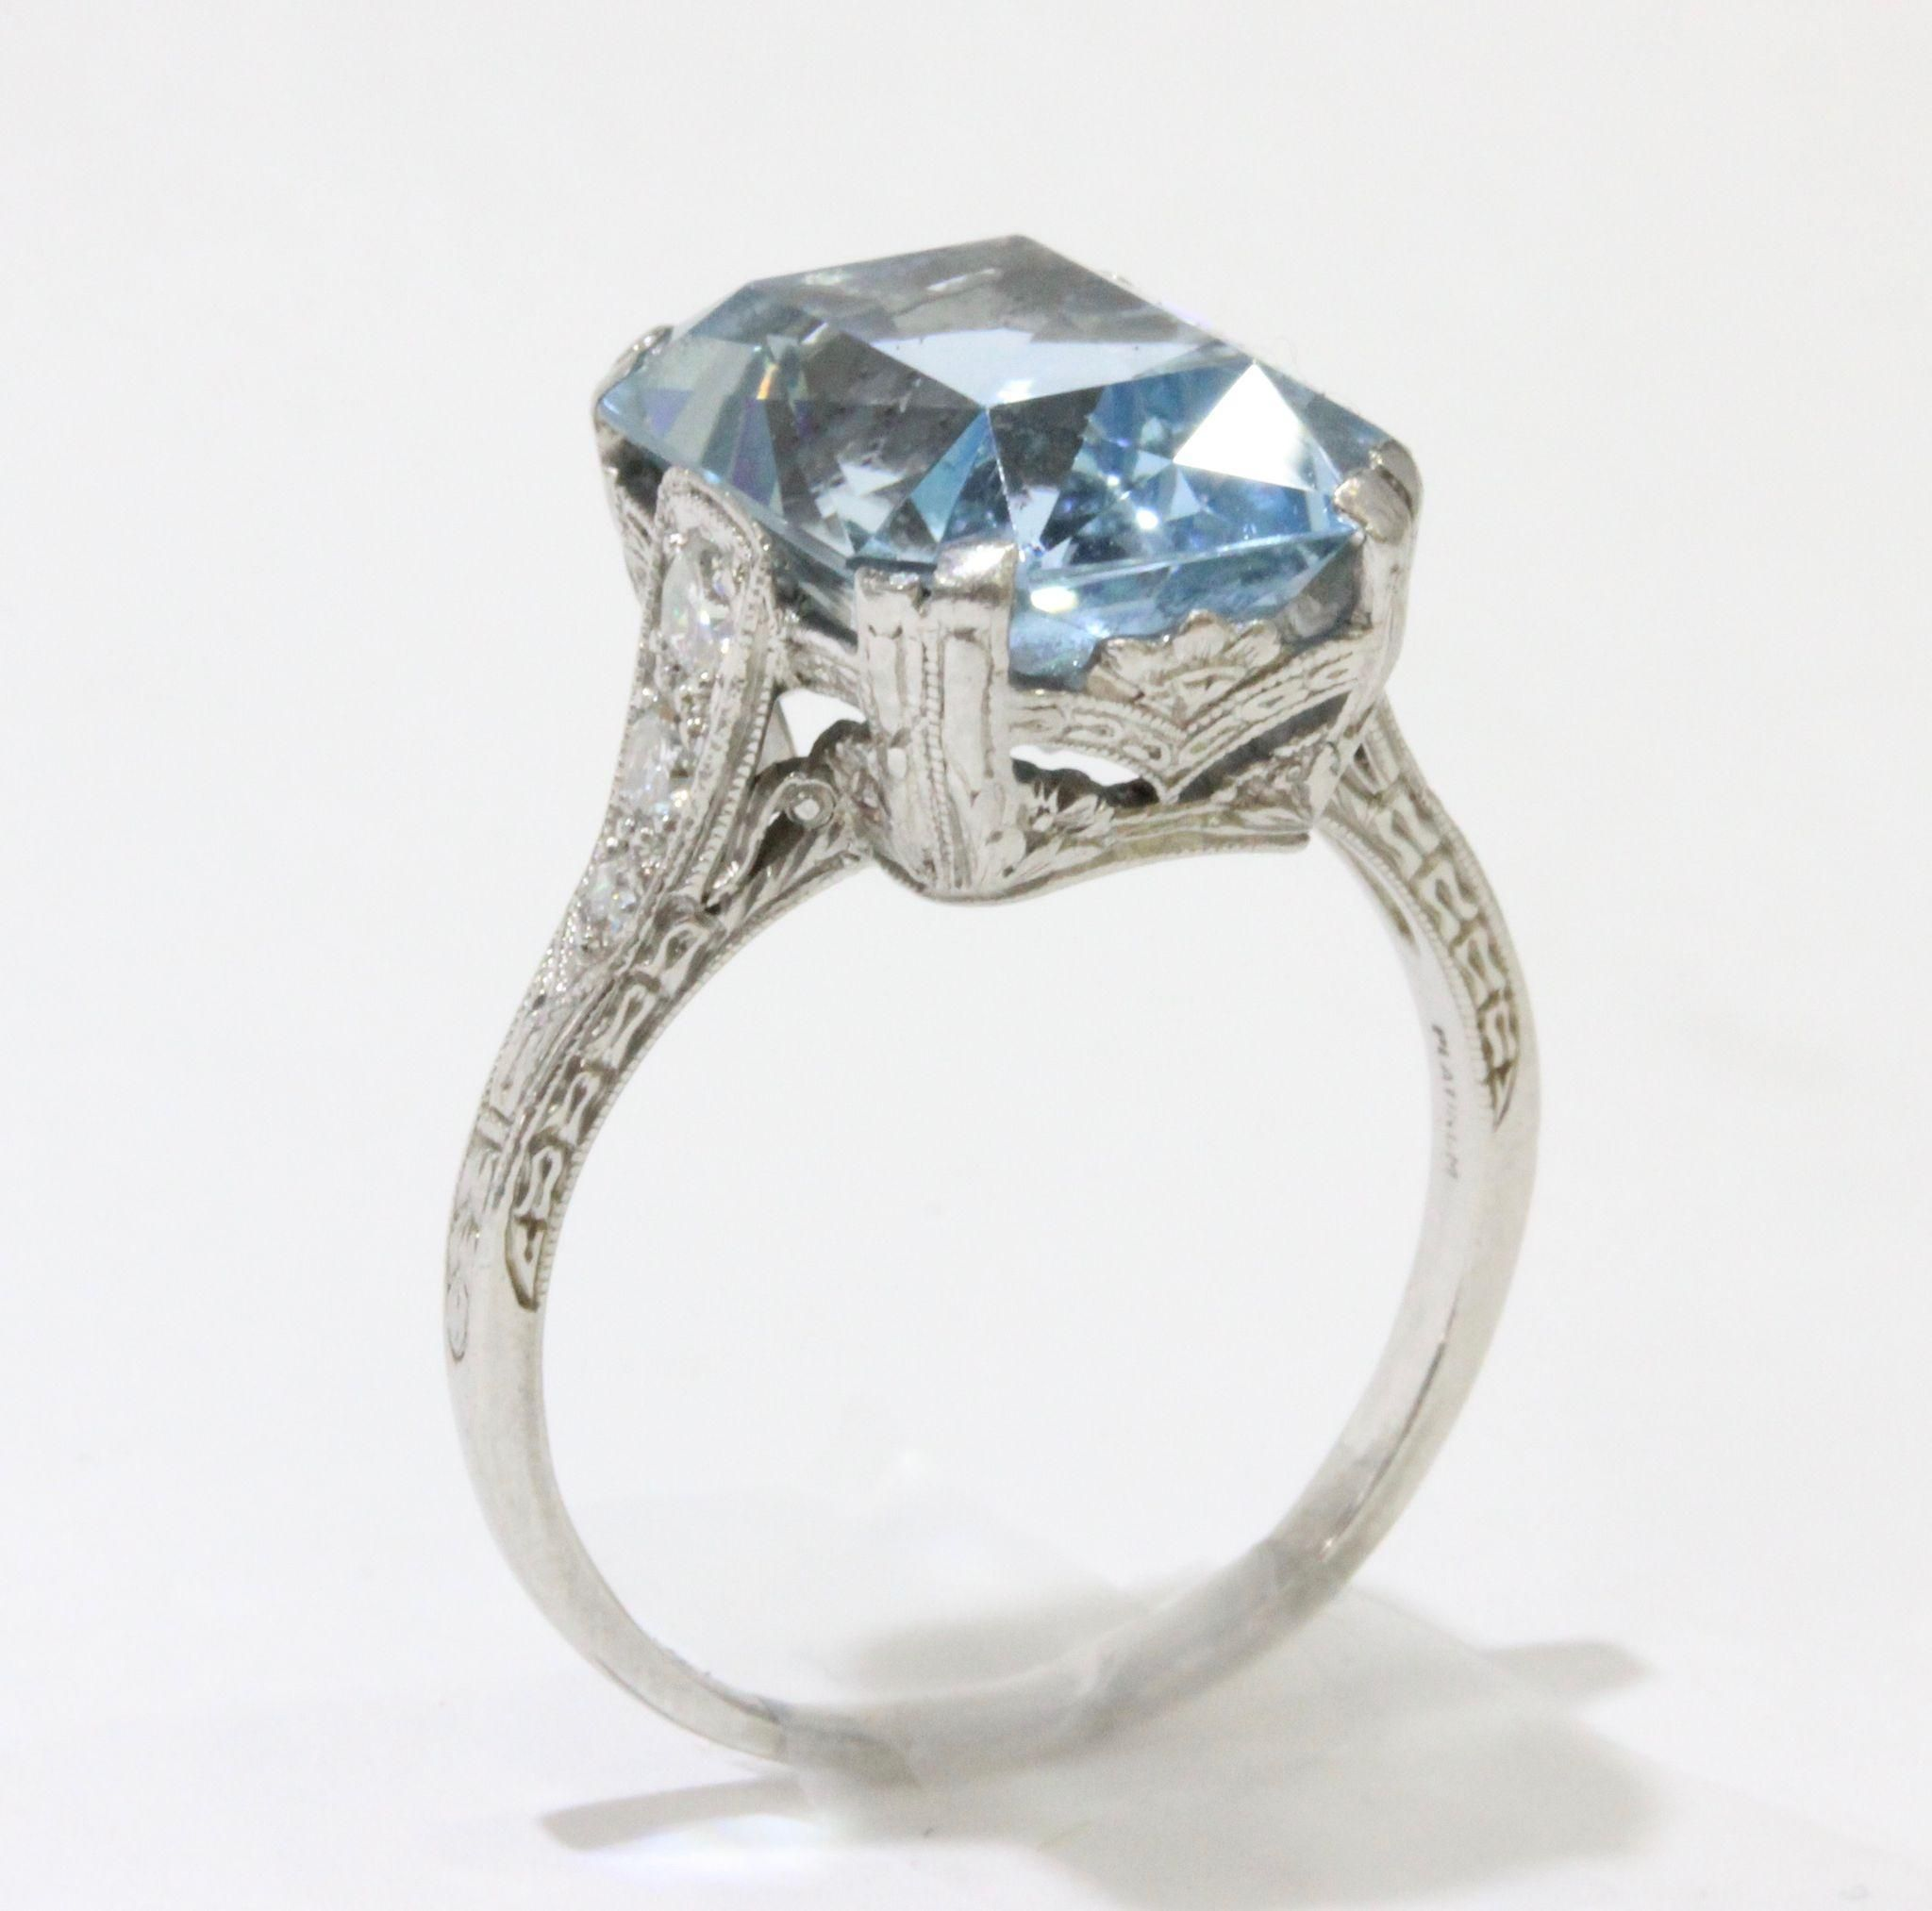 jewellery jeffrey product company aquamarine jewelers aqua ring and